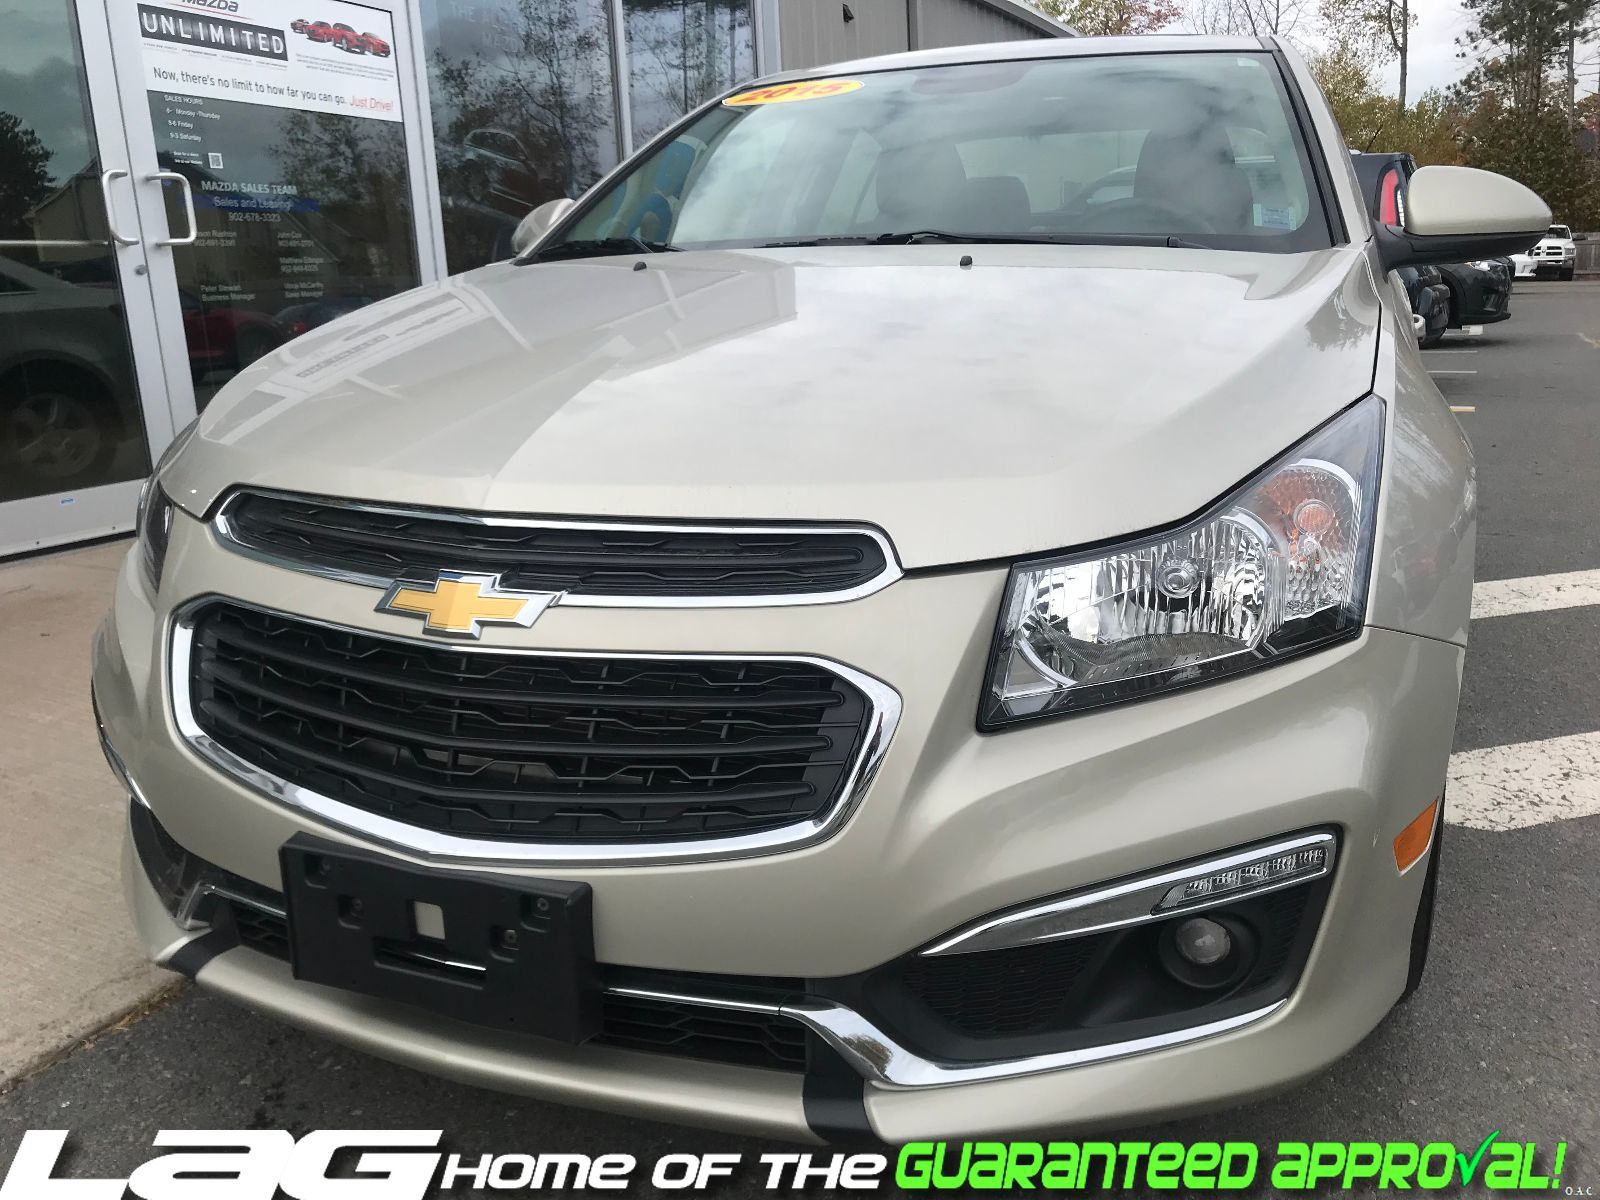 carfinder online salvage auto copart blue for in on limi auctions lot of north certificate en pittsburgh left sale chevrolet pa view cruze